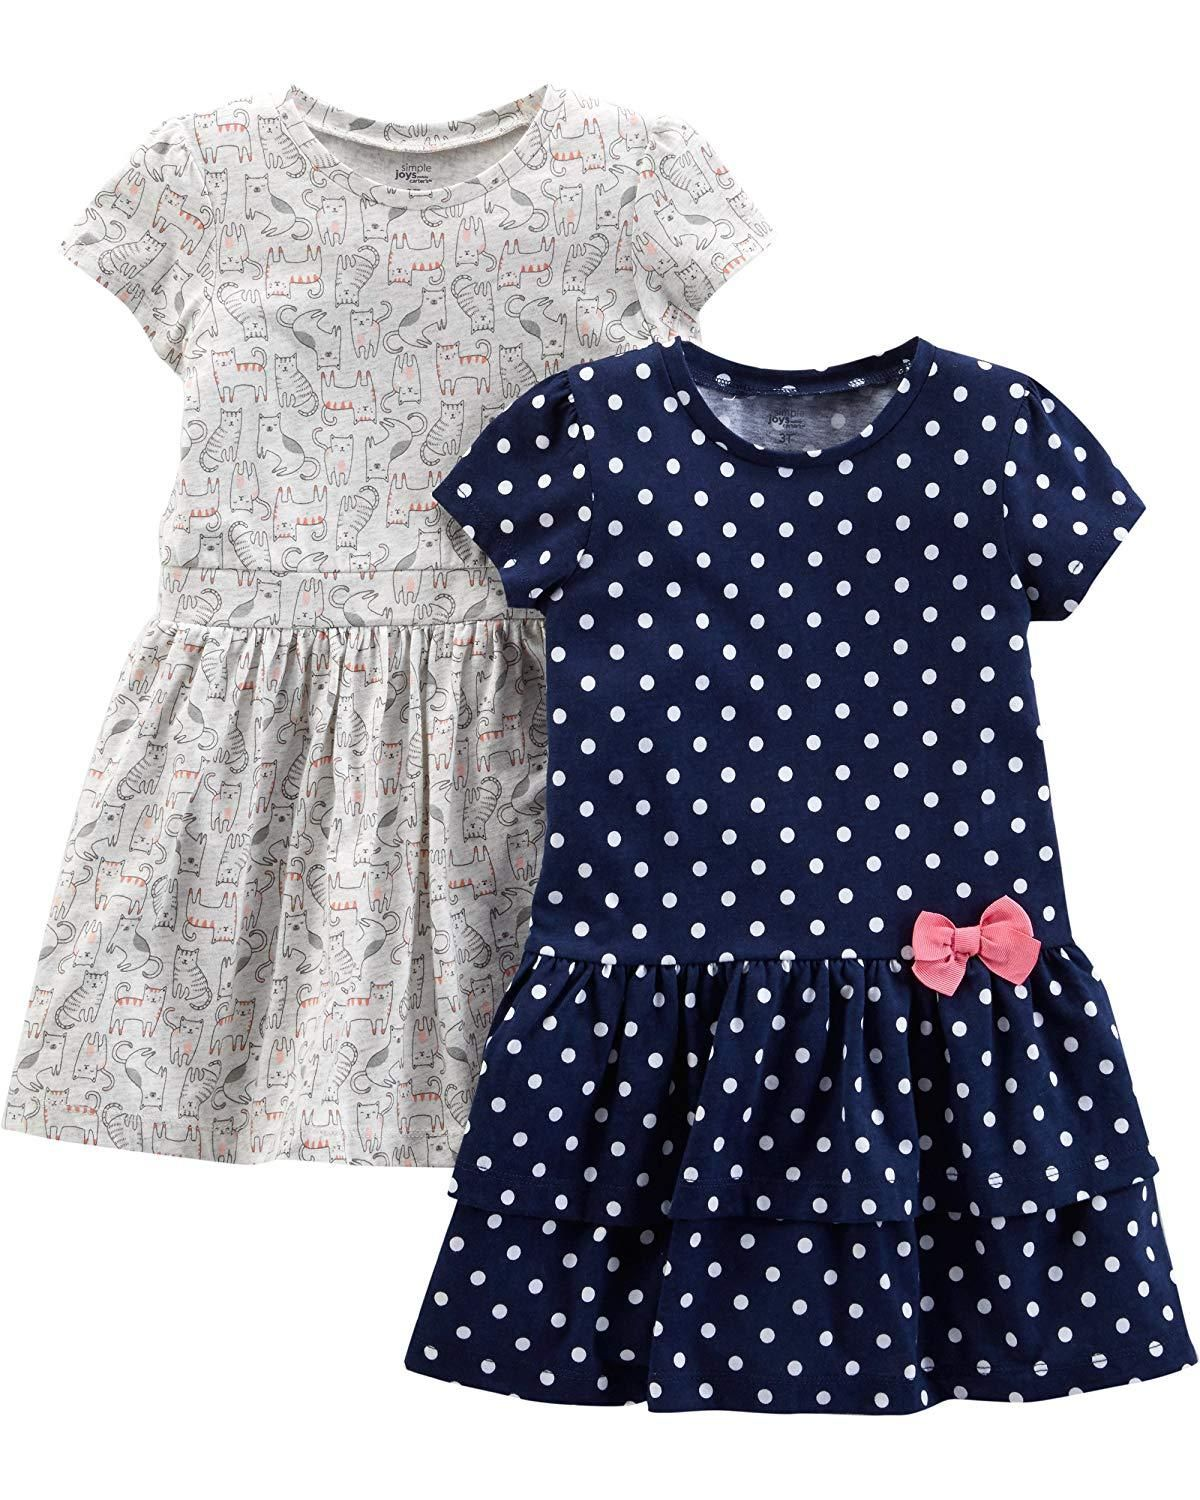 66393846dad18 Simple Joys by Carter's Girls' Baby and Toddler 2-Pack Short-Sleeve and  Sleeveless Dress Sets #postmyfashionkid #parentingmomnts #fashionkids  #parenting ...